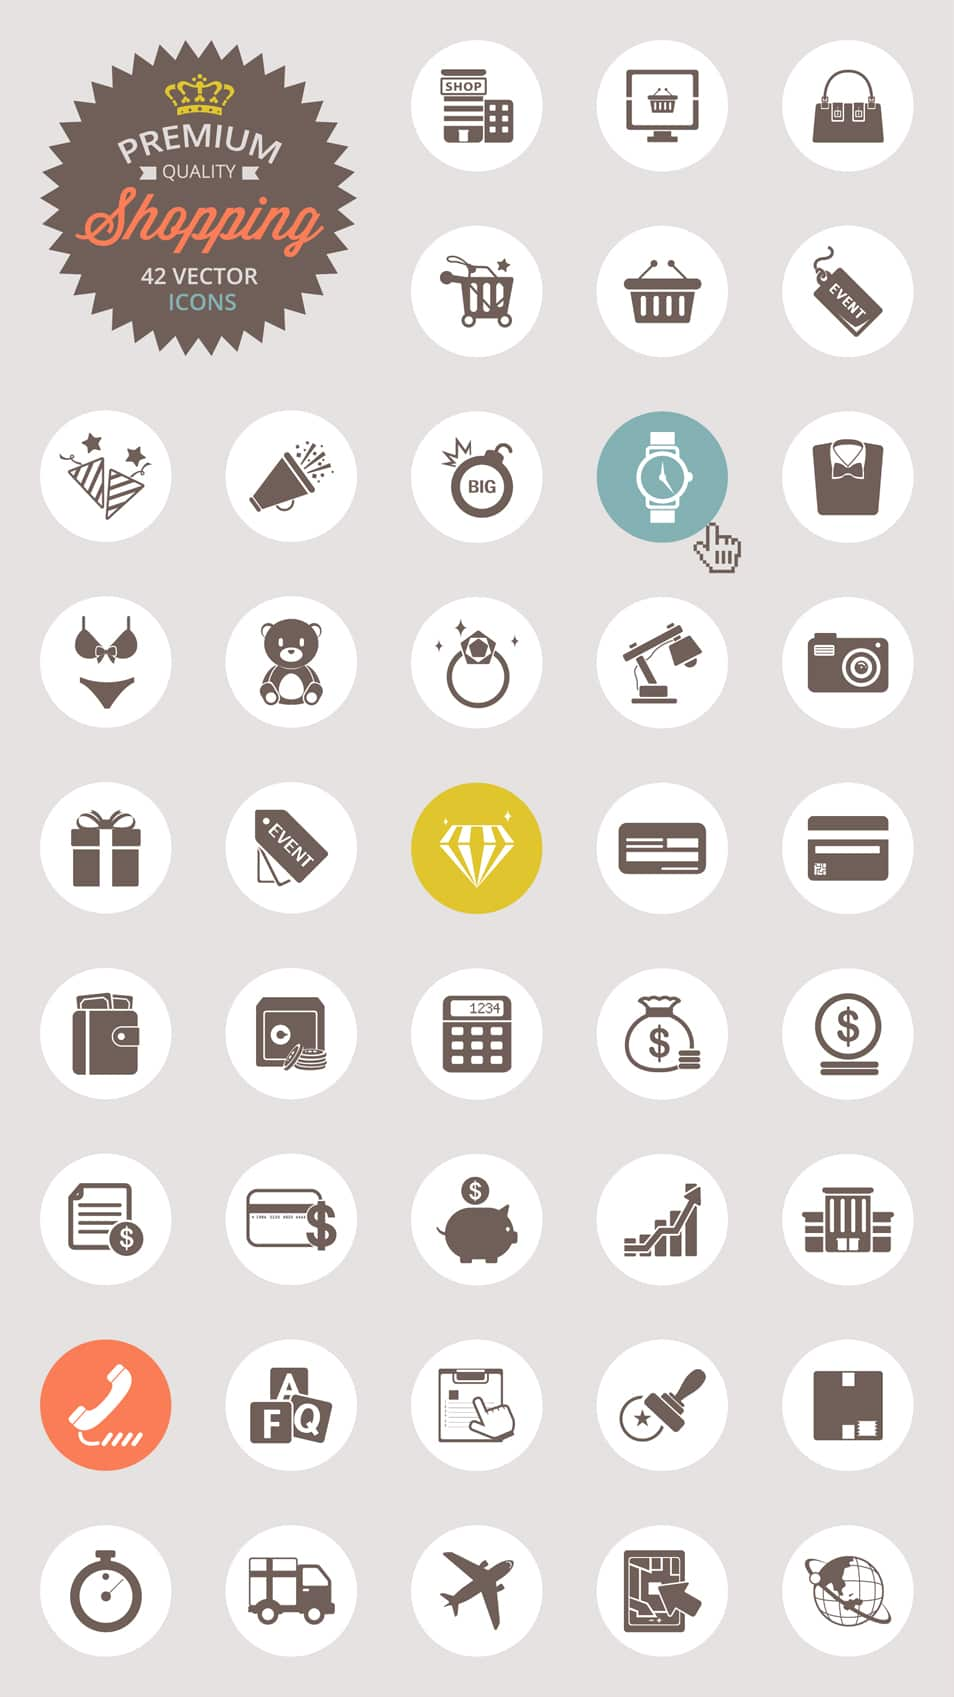 Shopping Vector Icon Set - cssauthor.com